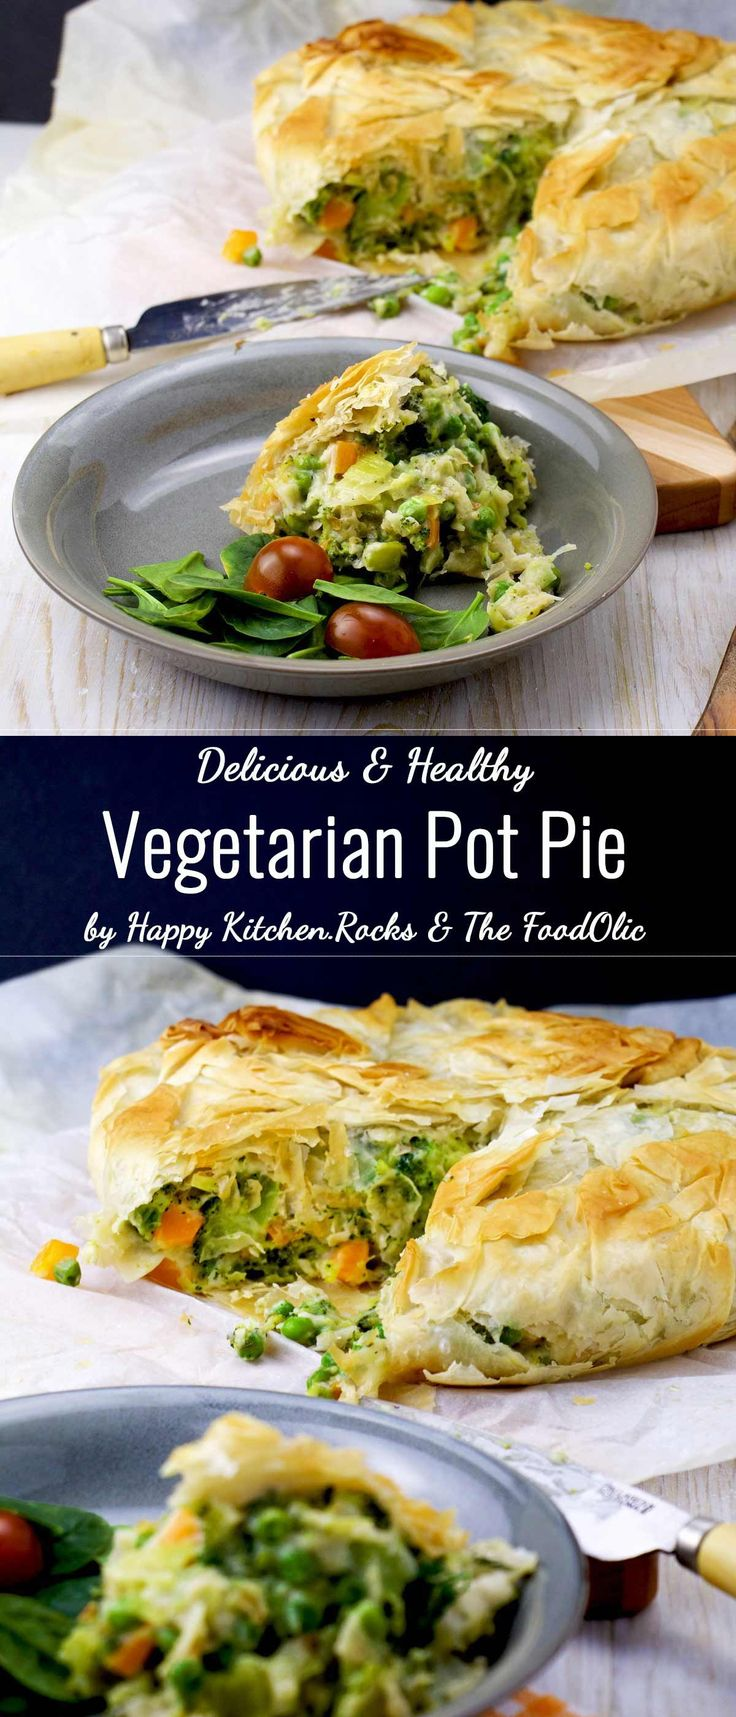 This broccoli vegetarian pot pie is a healthy variation of chicken pot pie, without the meat of course… Broccoli and almonds replace the chicken in this easy vegetarian recipe. This pot pie is filled with colourful veggies, smooth béchamel with a nutty flair, enveloped in a flaky filo crust. Comfort food at its best!